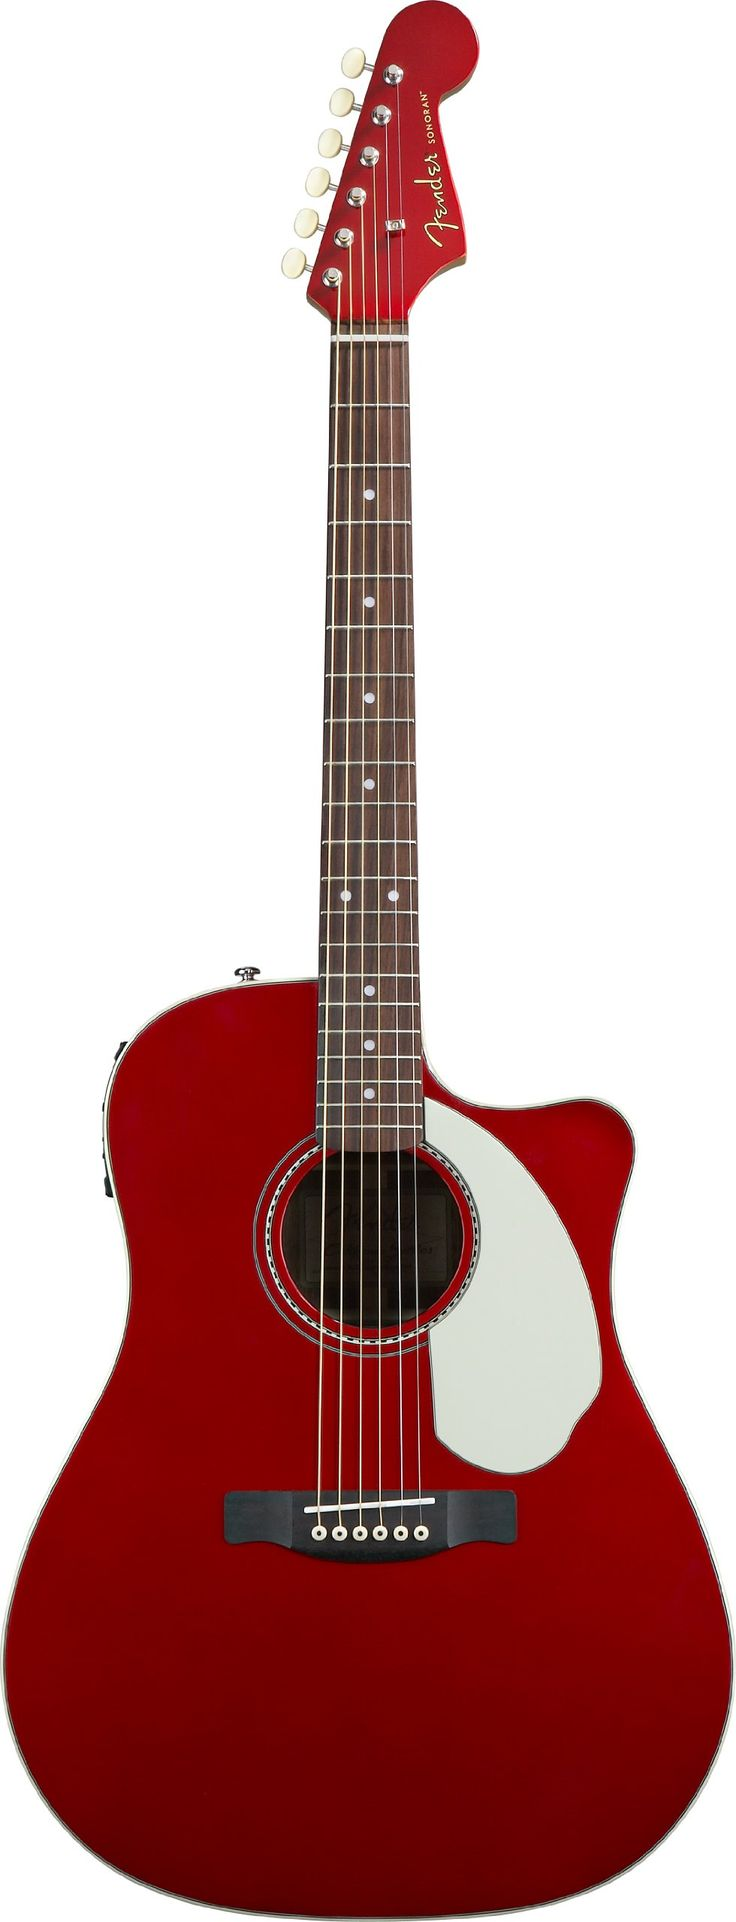 i want to replace my Squier Strat and my 12-string Rogue, which I rarely use, with a Sonoran acoustic/electric.